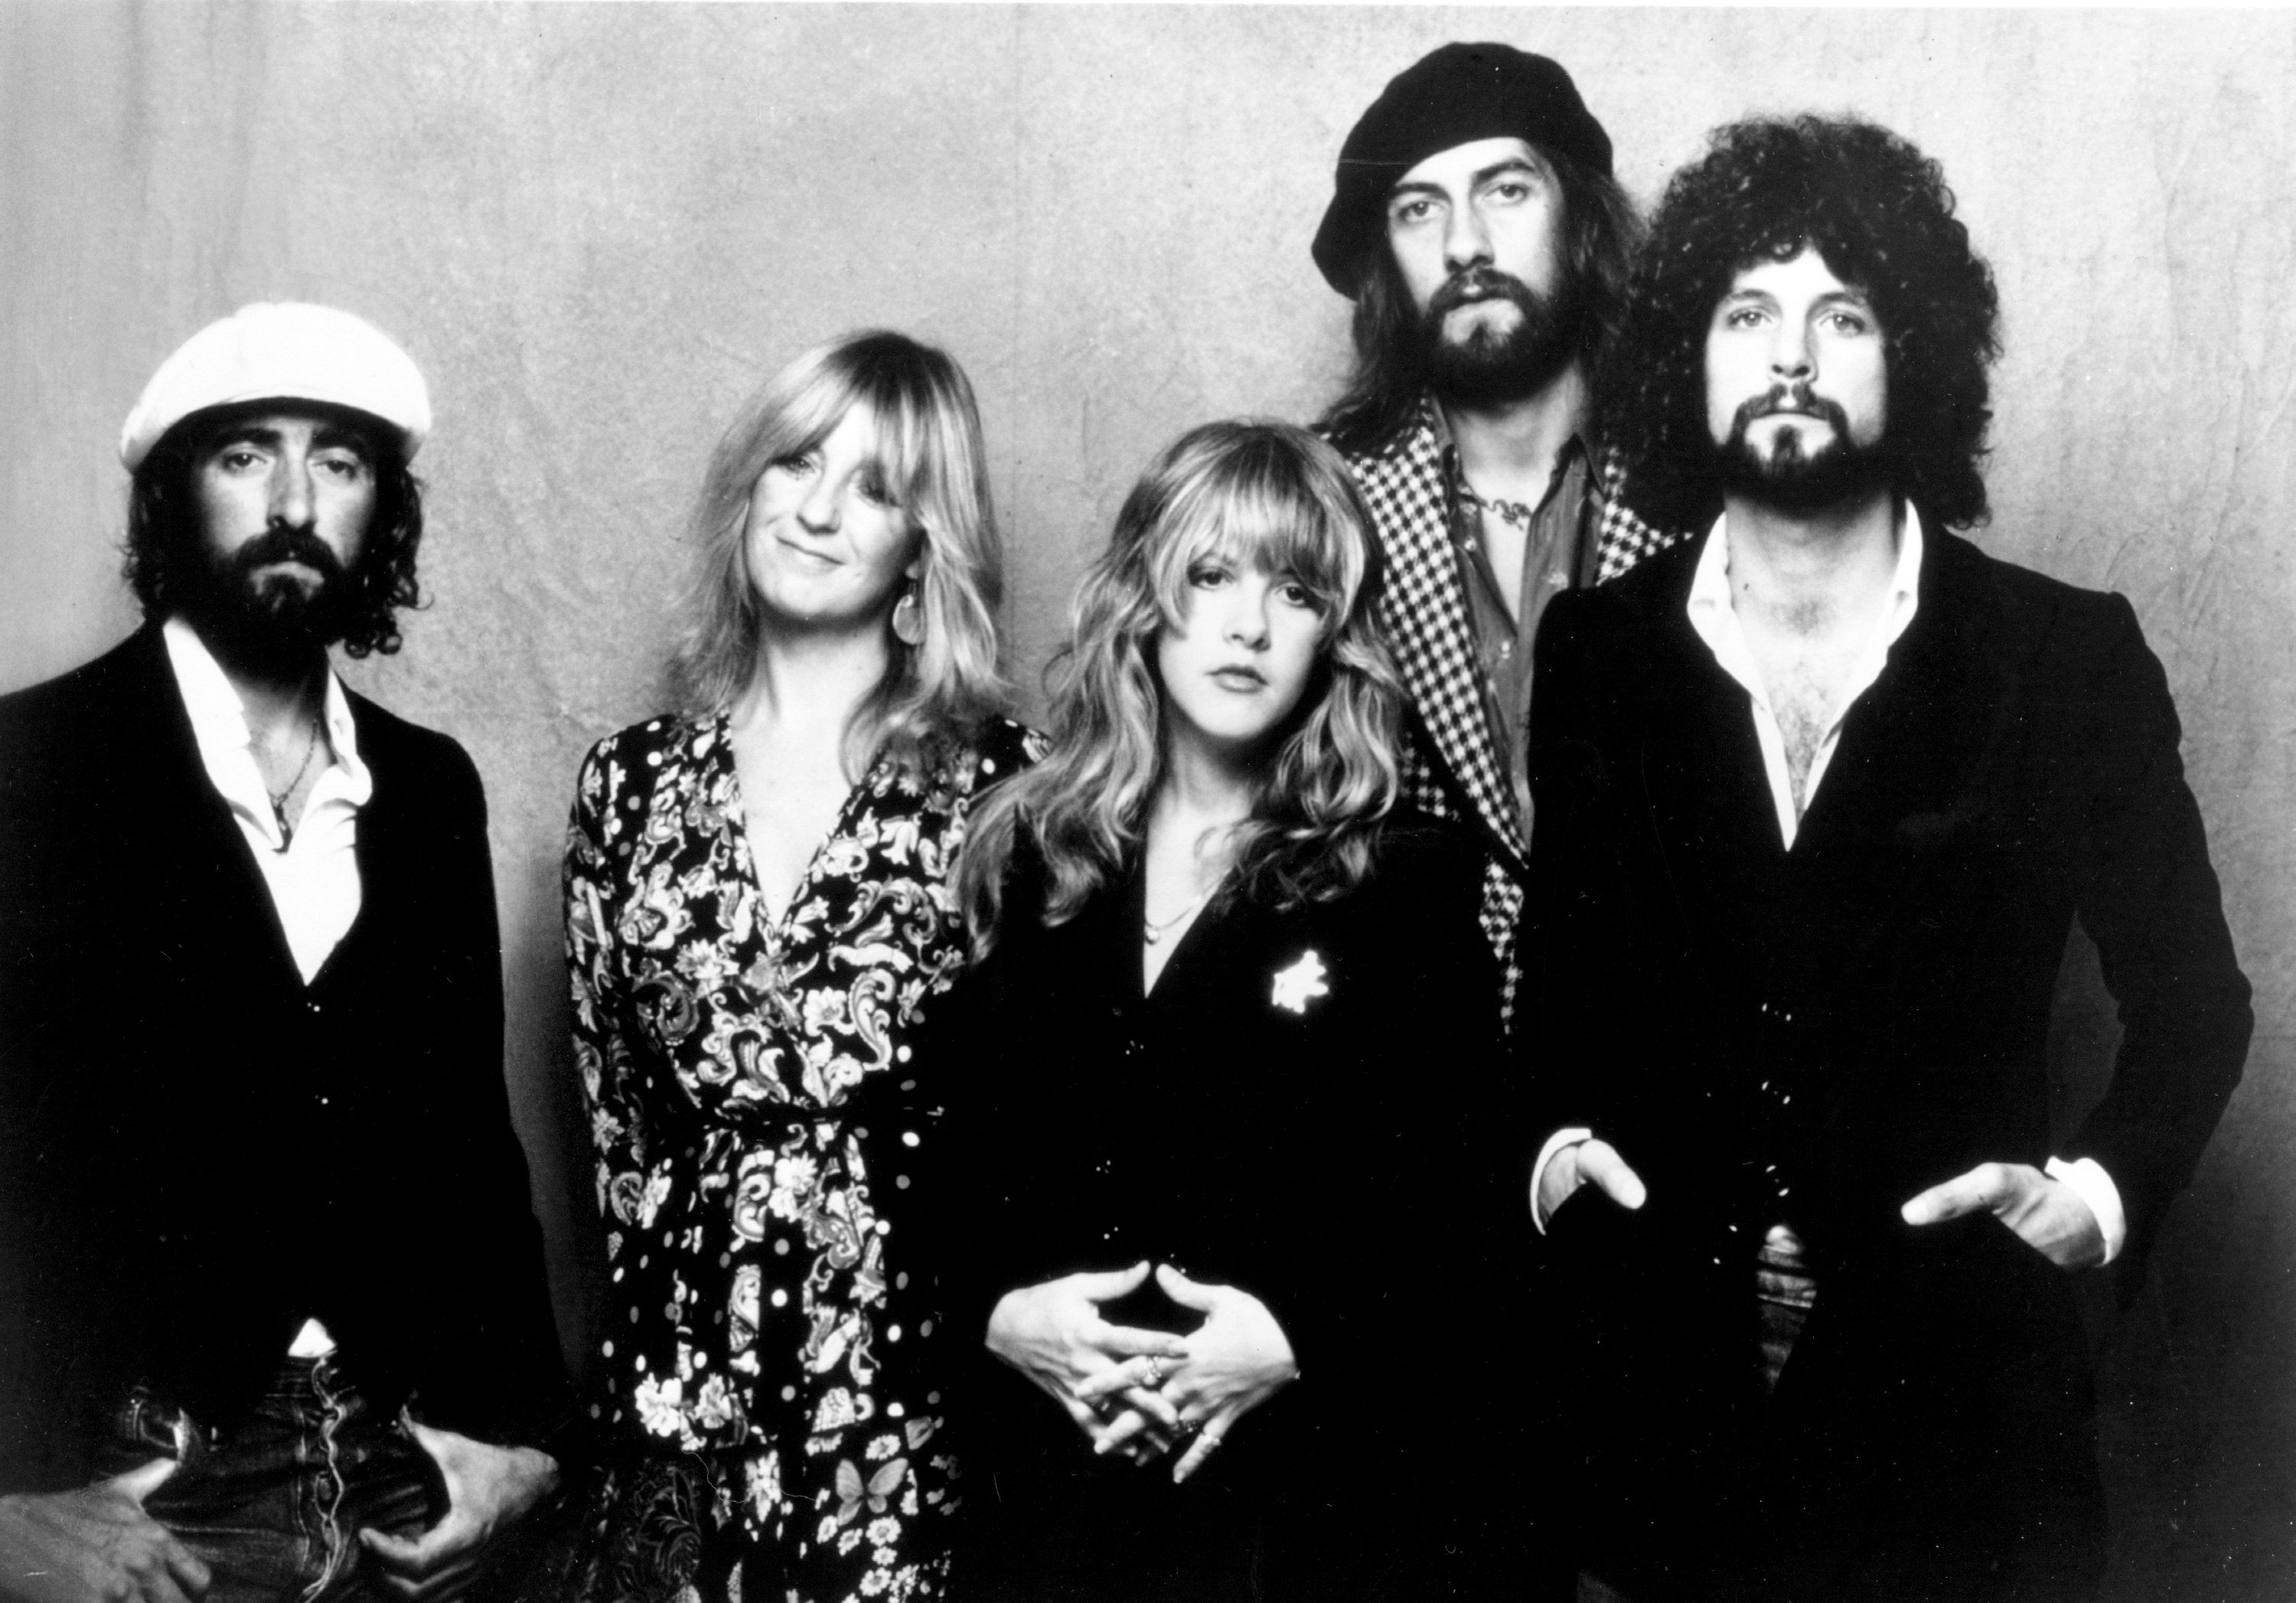 """John McVie, Christine McVie, Stevie Nicks, Mick Fleetwood, and Lindsey Buckingham of the rock group """"Fleetwood Mac"""" pose for a portrait in 1975."""